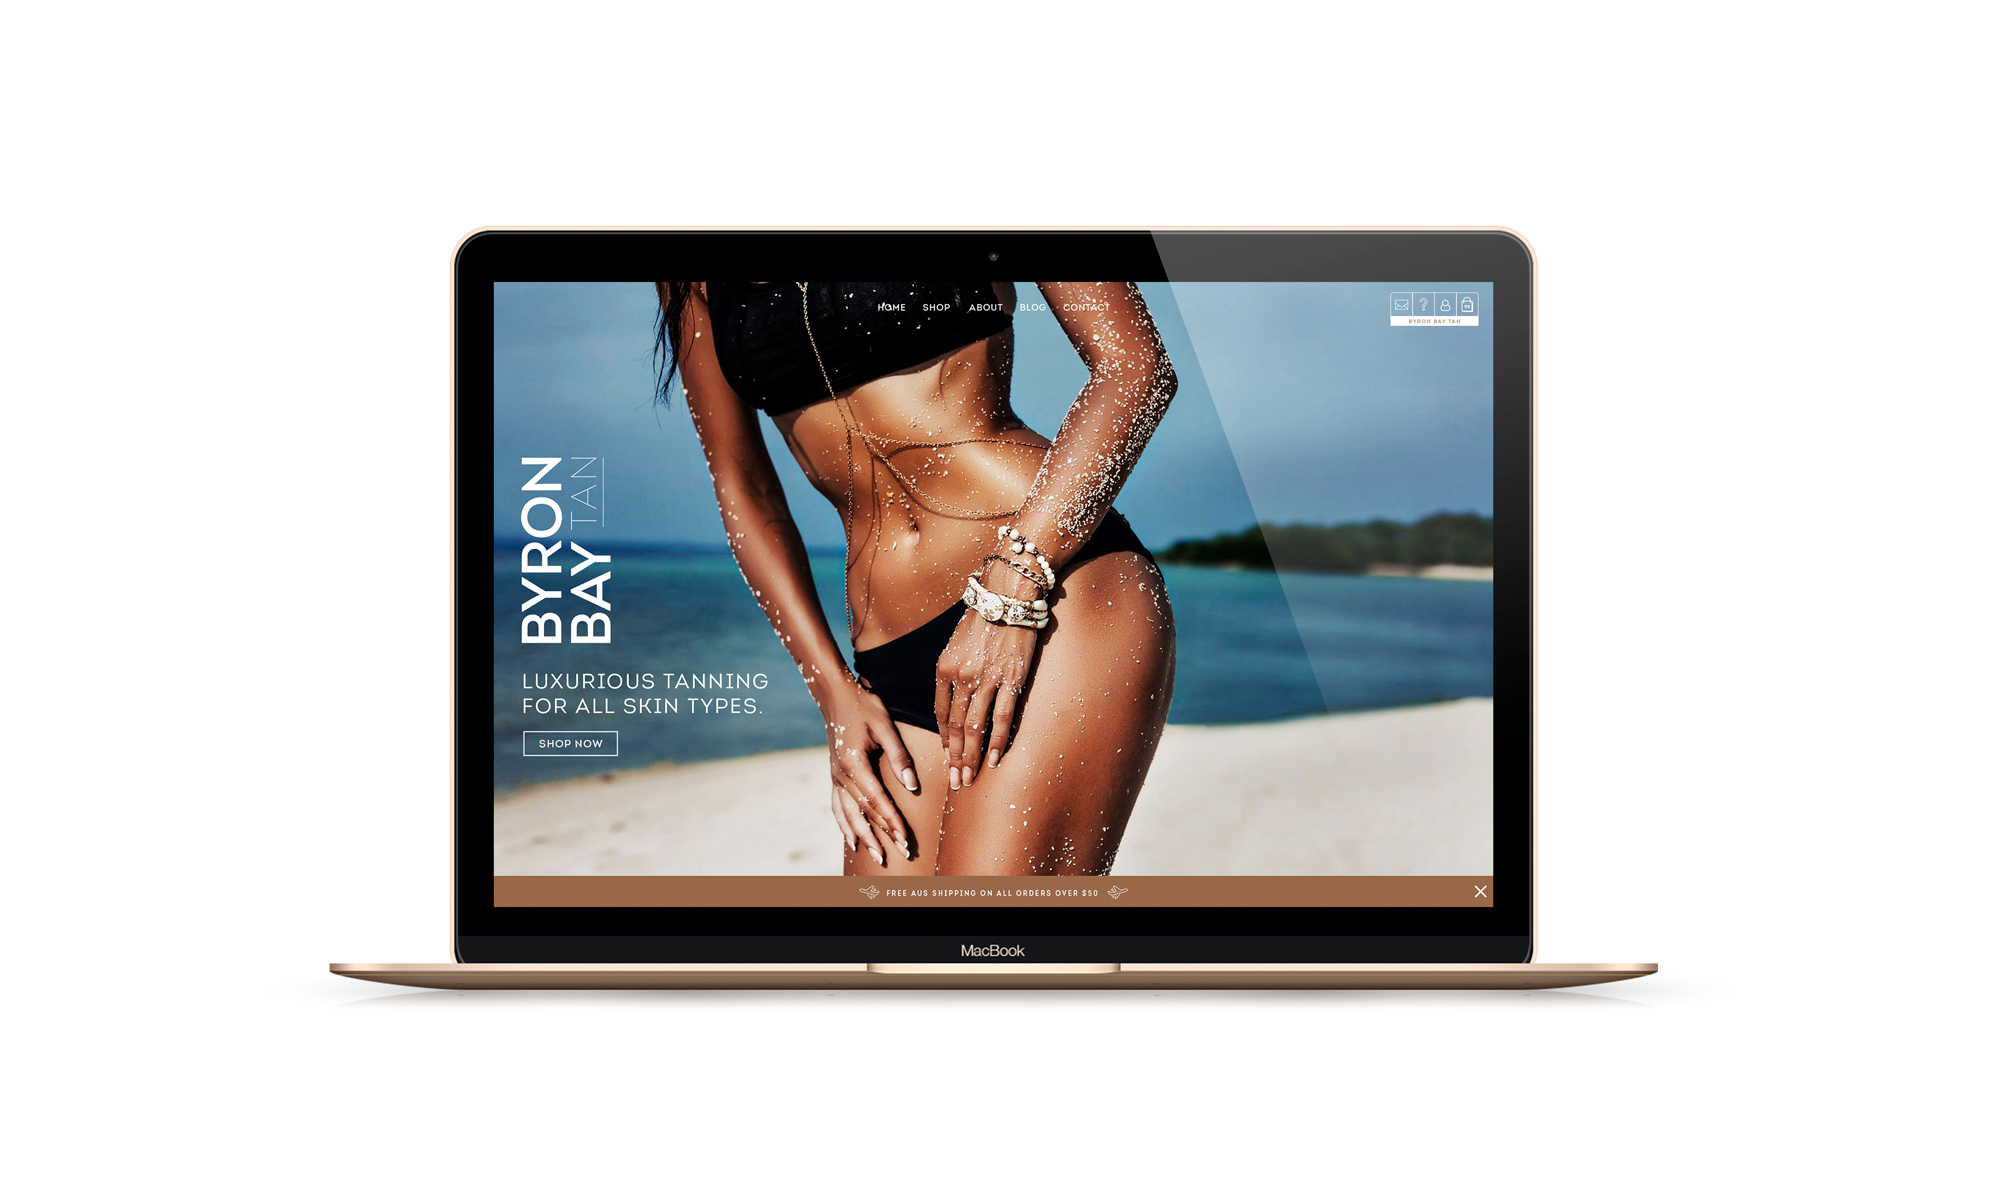 Byron Bay Tan - Website Design